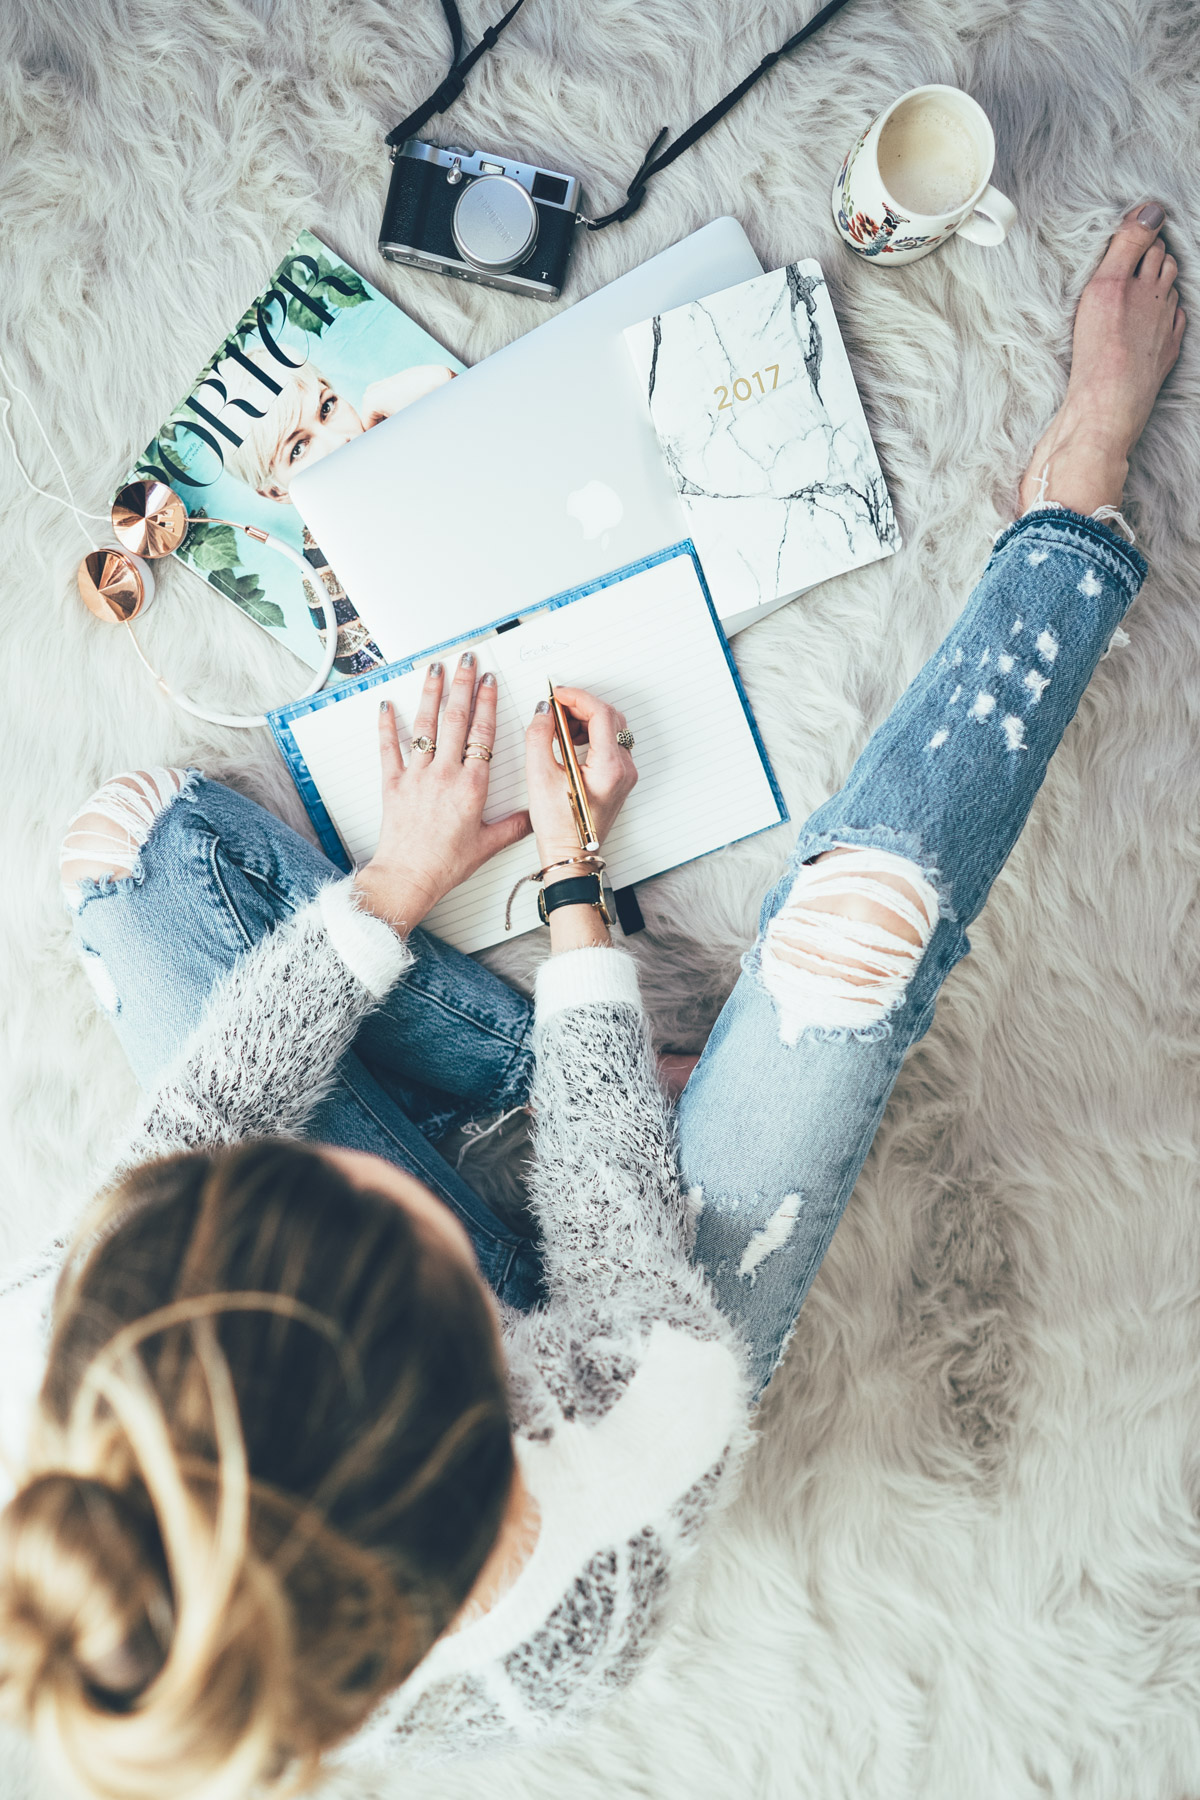 Jess Ann Kirby gets some work done in ripped jeans